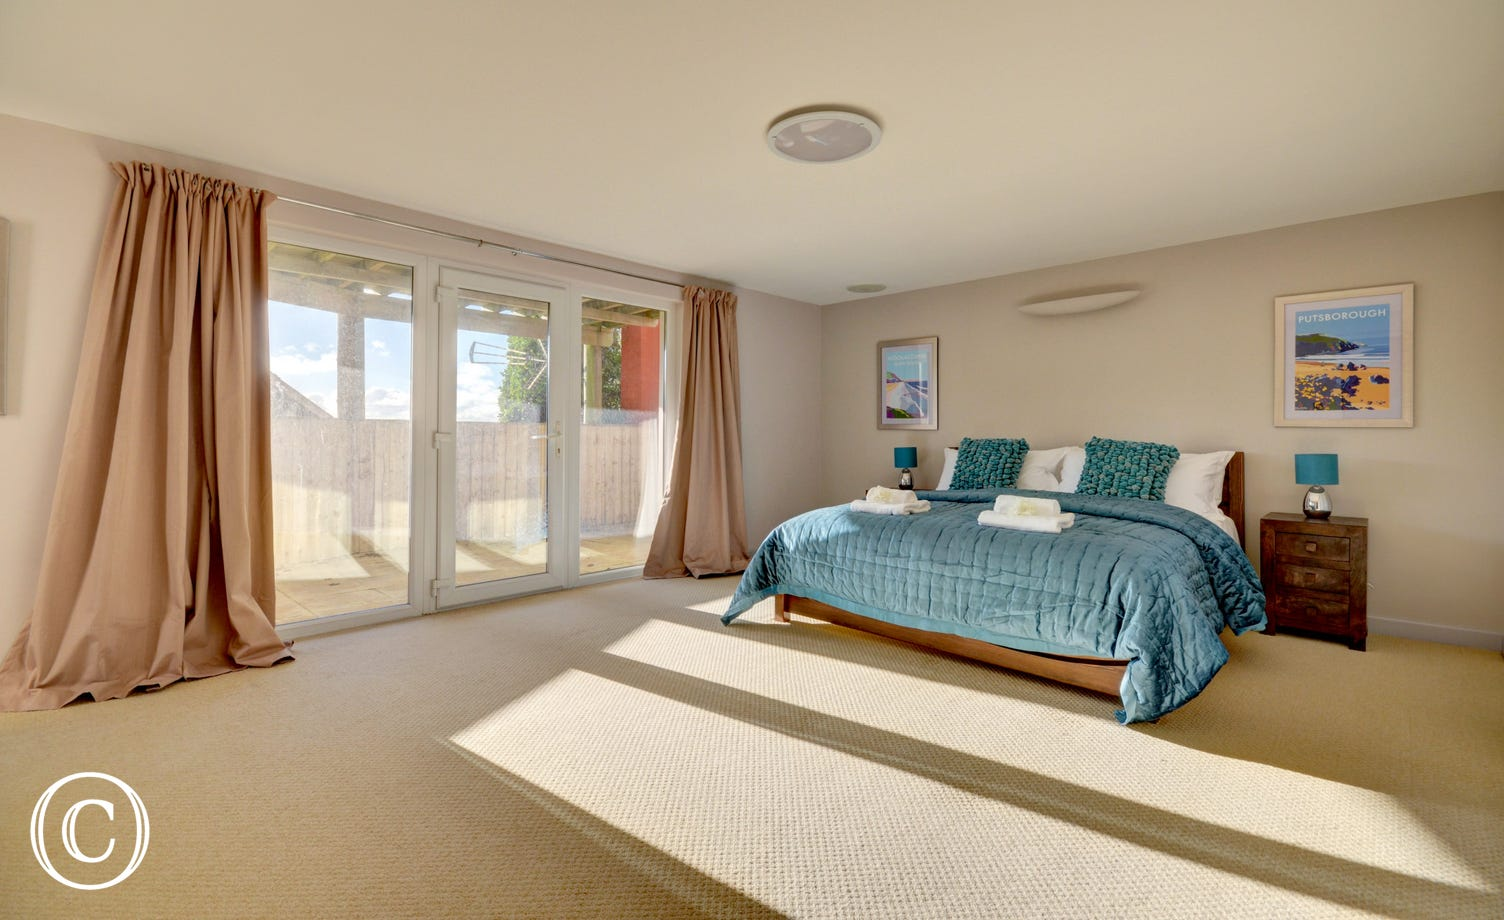 Generous size master bedroom with kingsize bed and patio doors